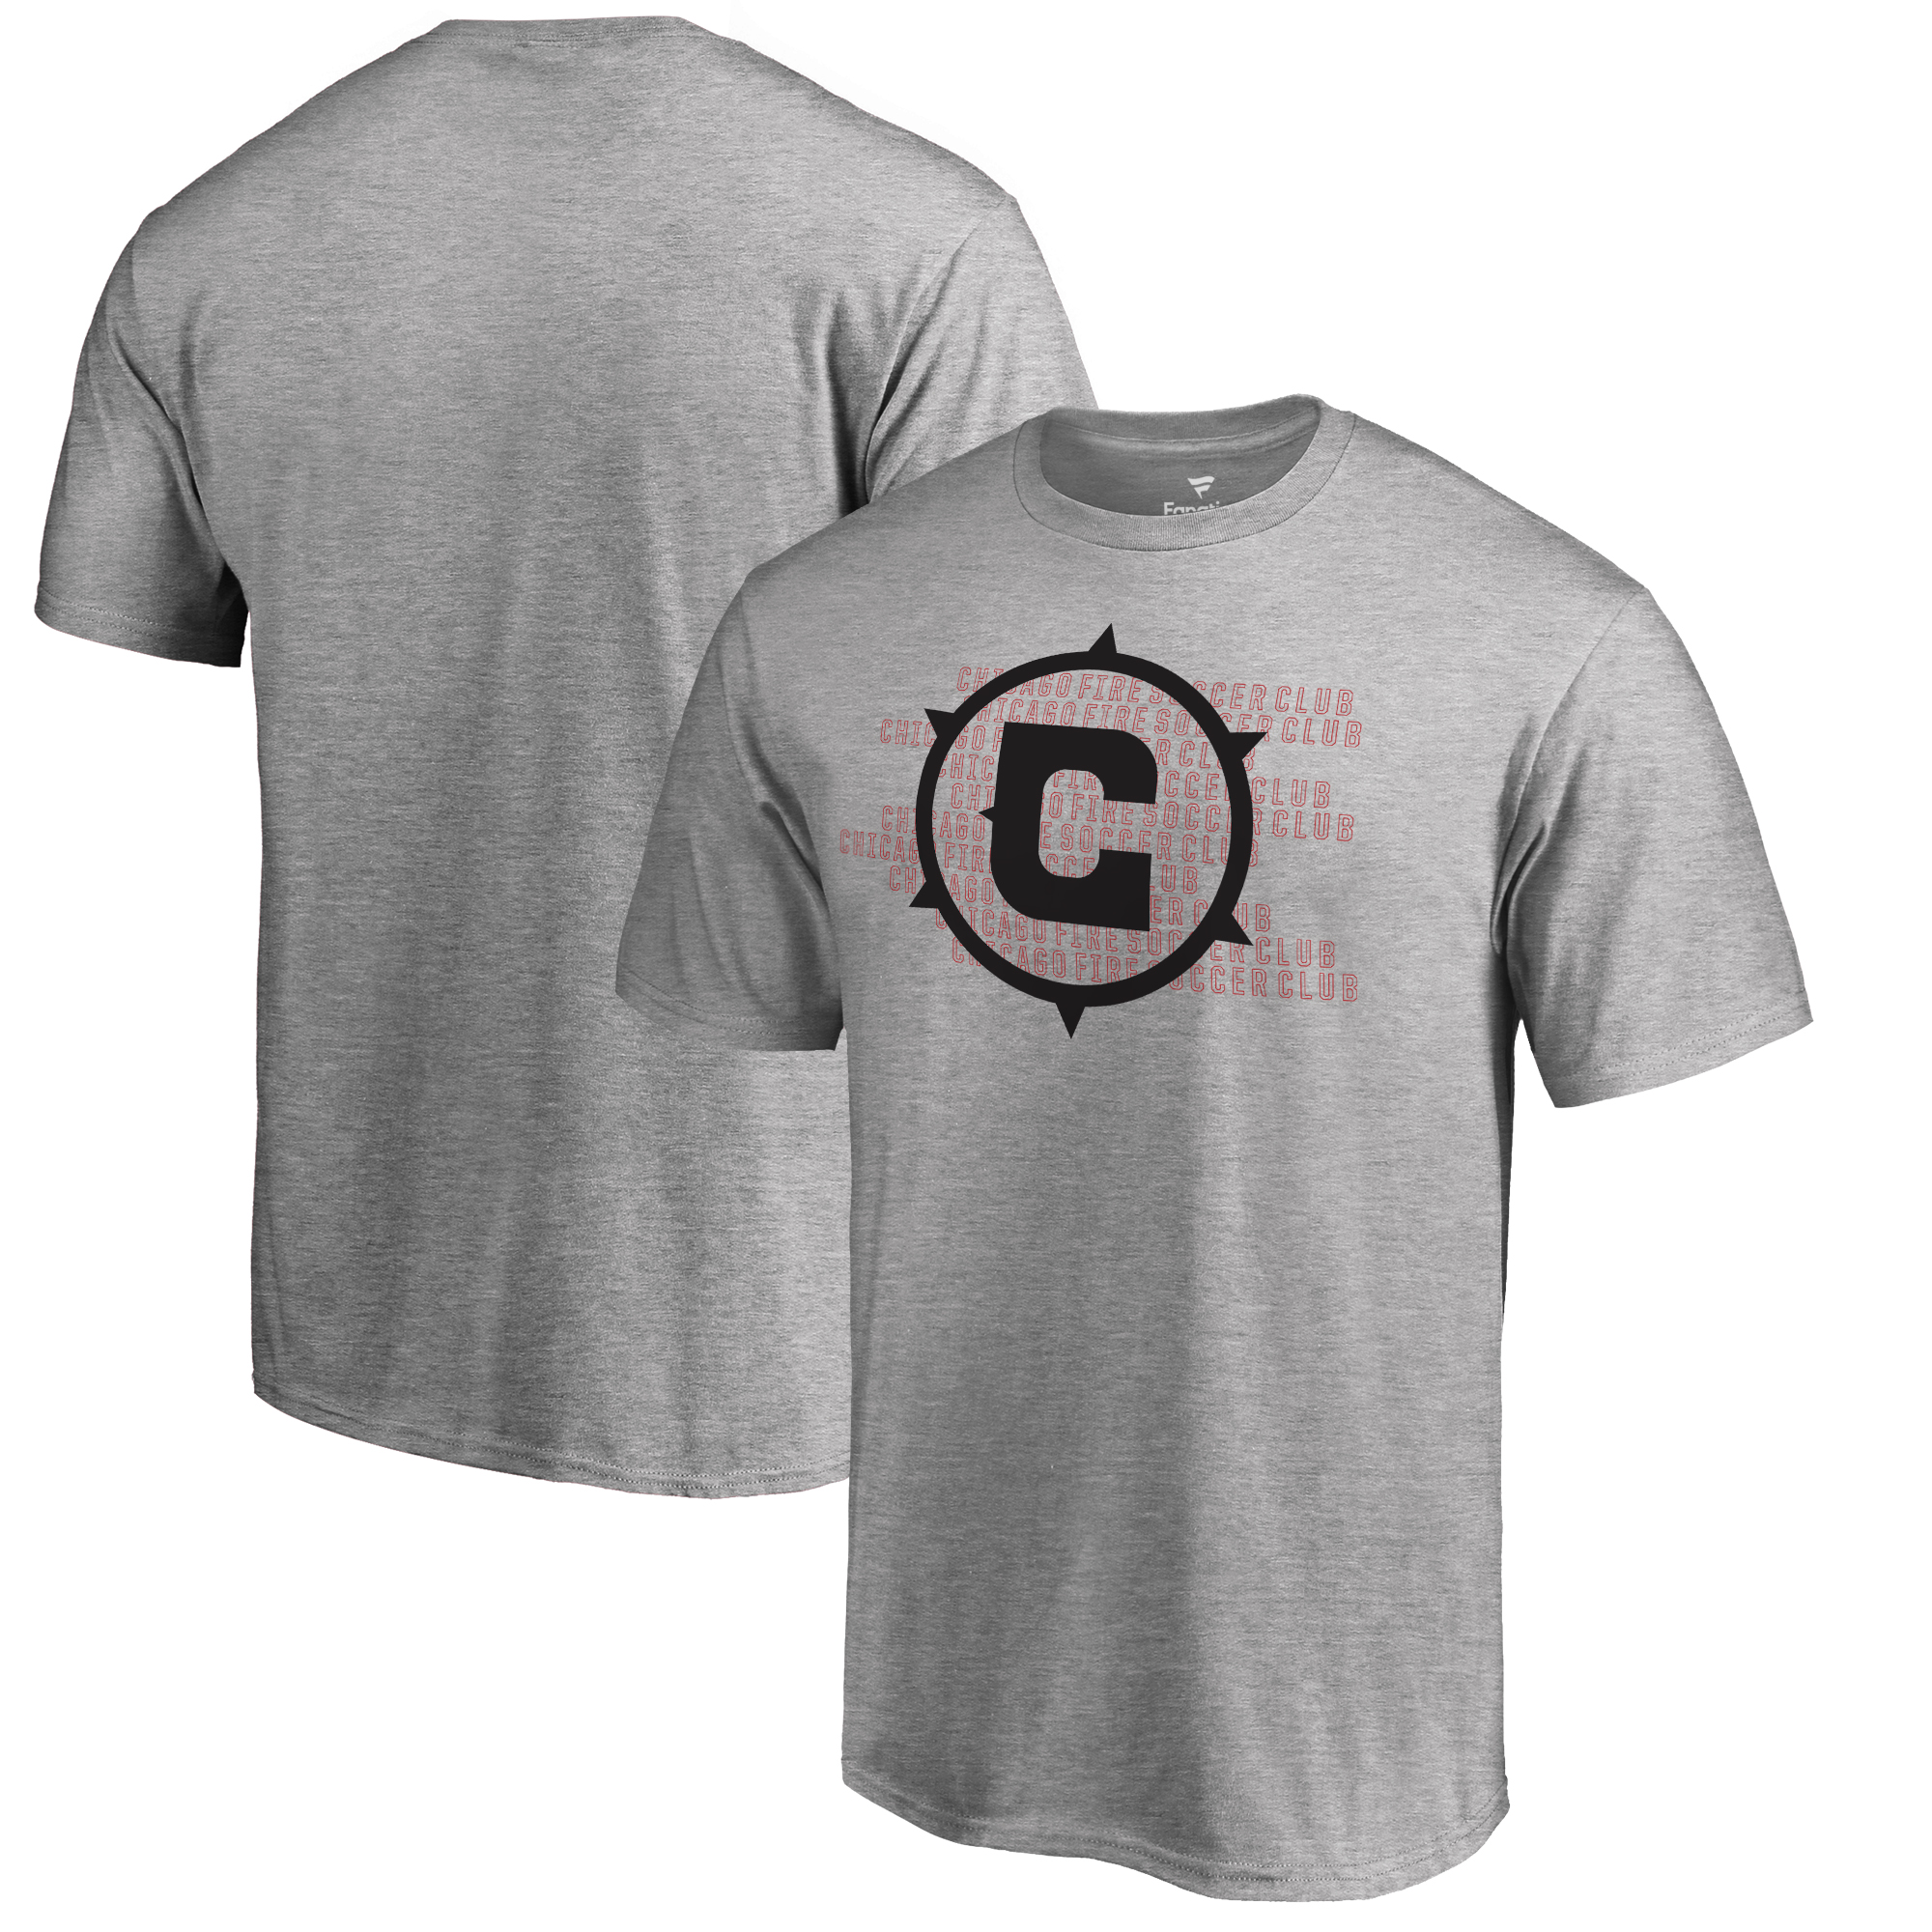 Chicago Fire Fanatics Branded Repeat T-Shirt - Heathered Gray